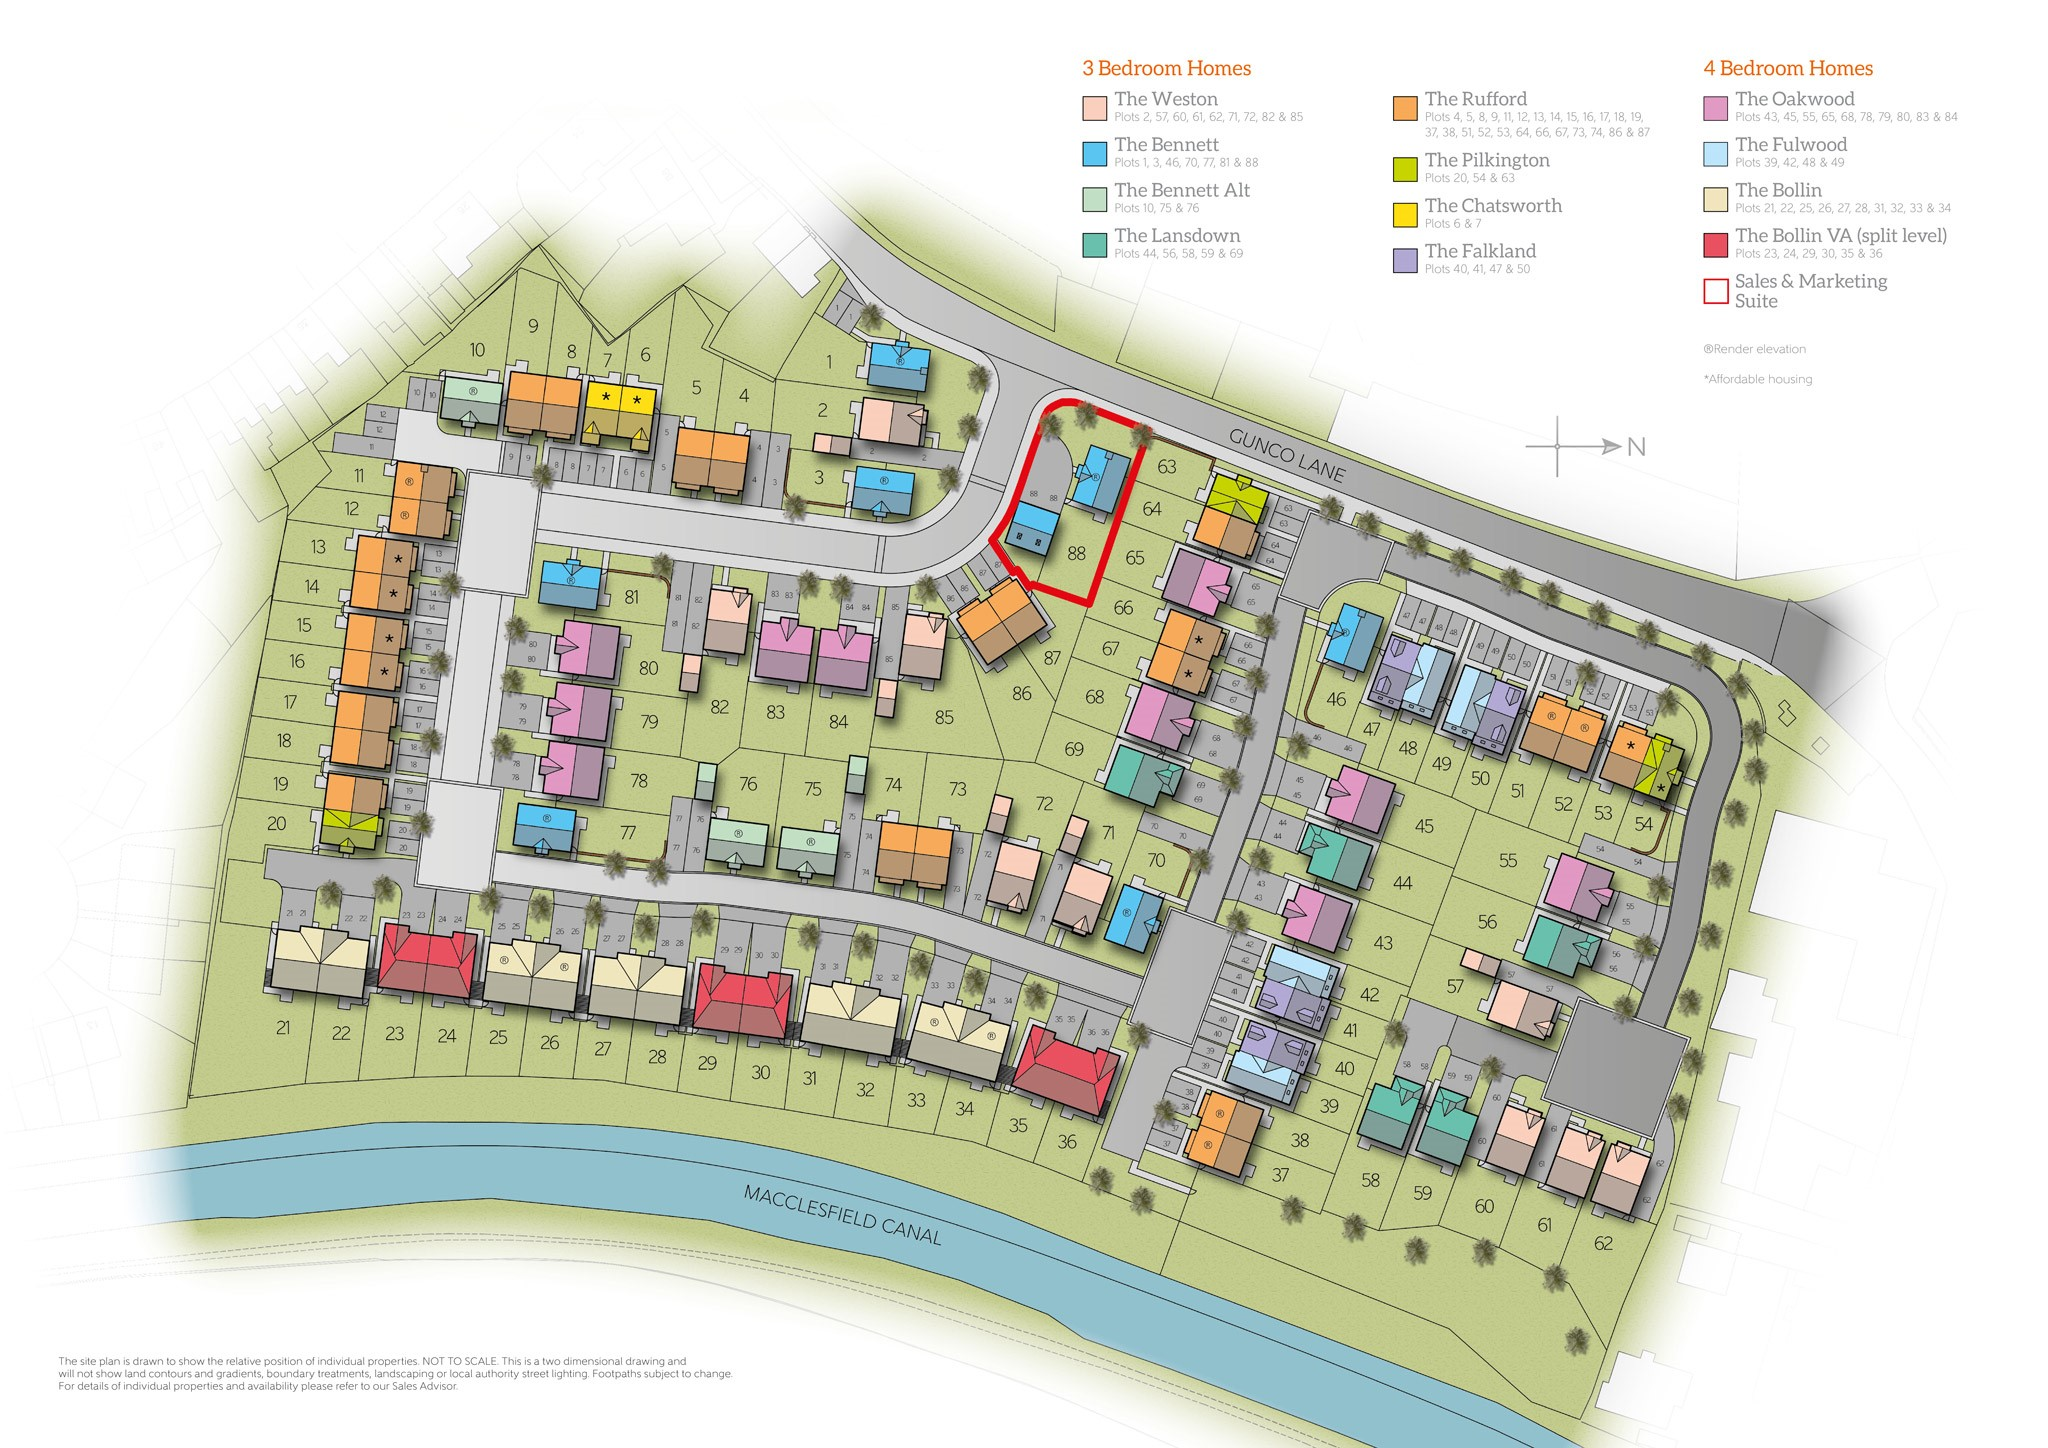 New Detached Home In Macclesfield Cheshire From Bellway Homes Weston Wiring Diagram Siteplan Of Waterways 1831